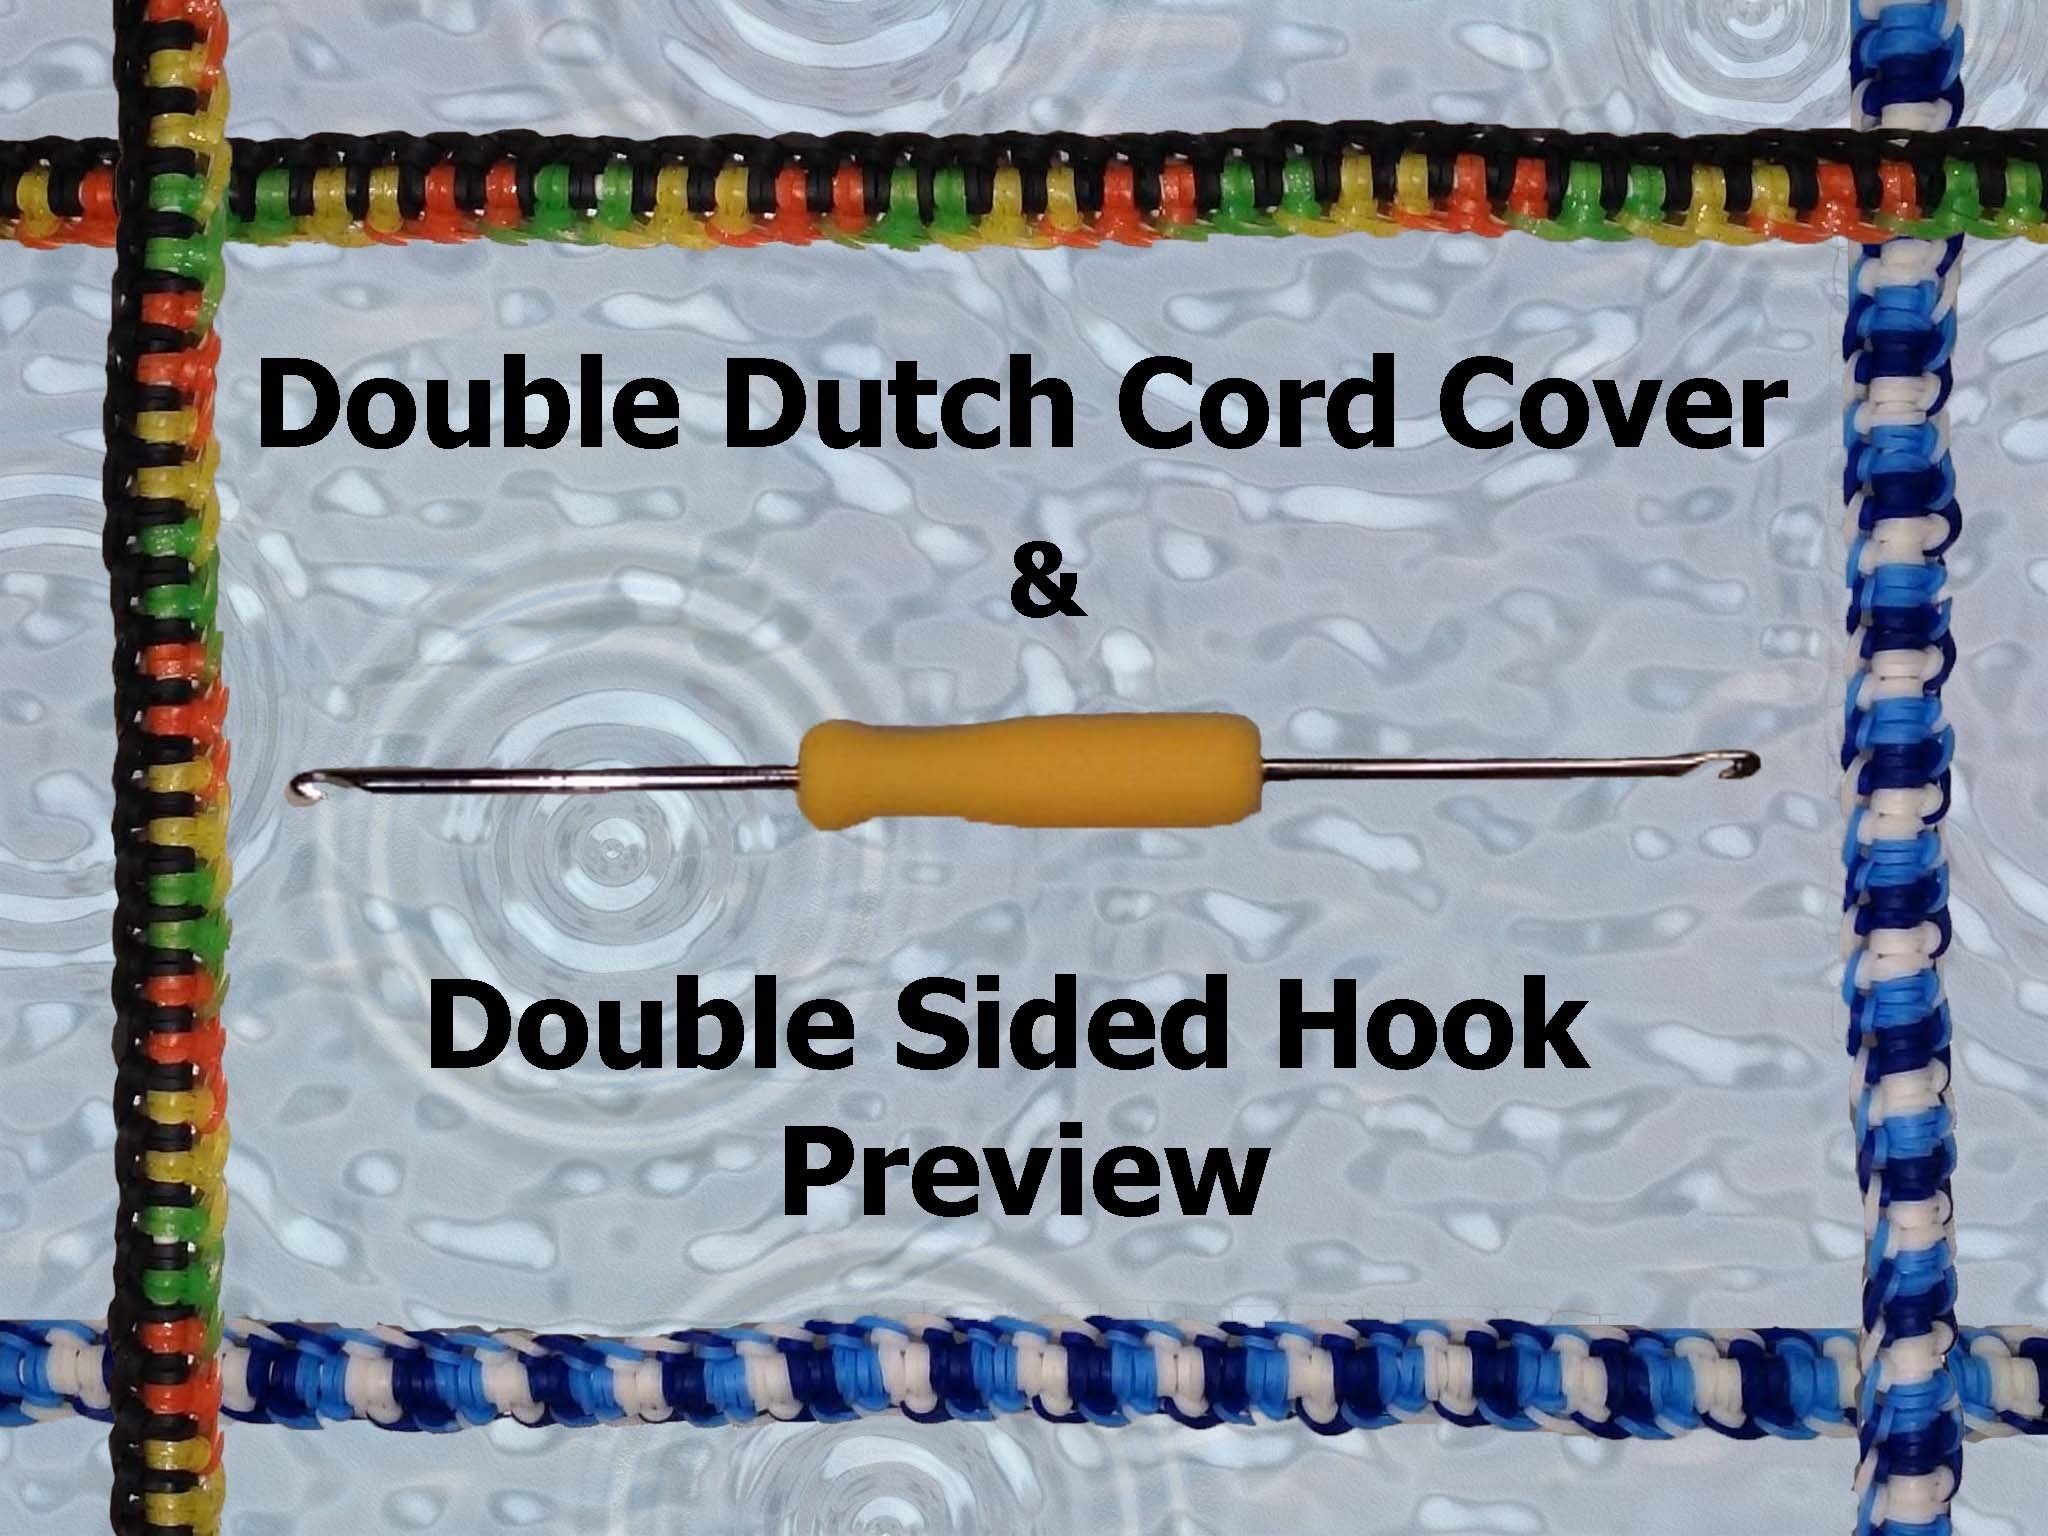 New Double Dutch Cord Cover - Hook Only - Plus Preview of Rainbow Loom Double Sided Metal Hook